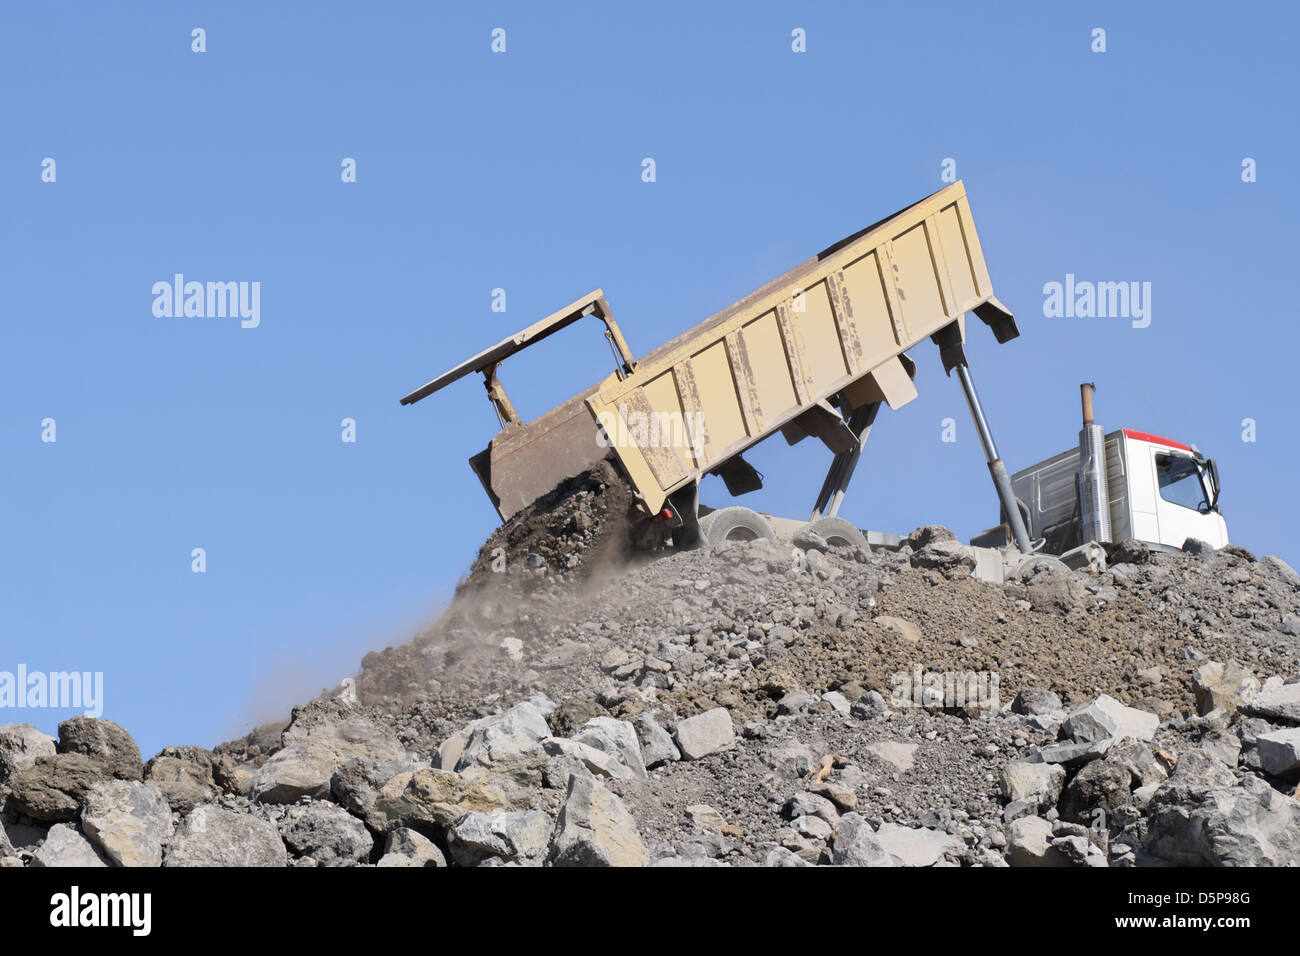 Dump truck lorry dumping soil and stones on construction area - Stock Image